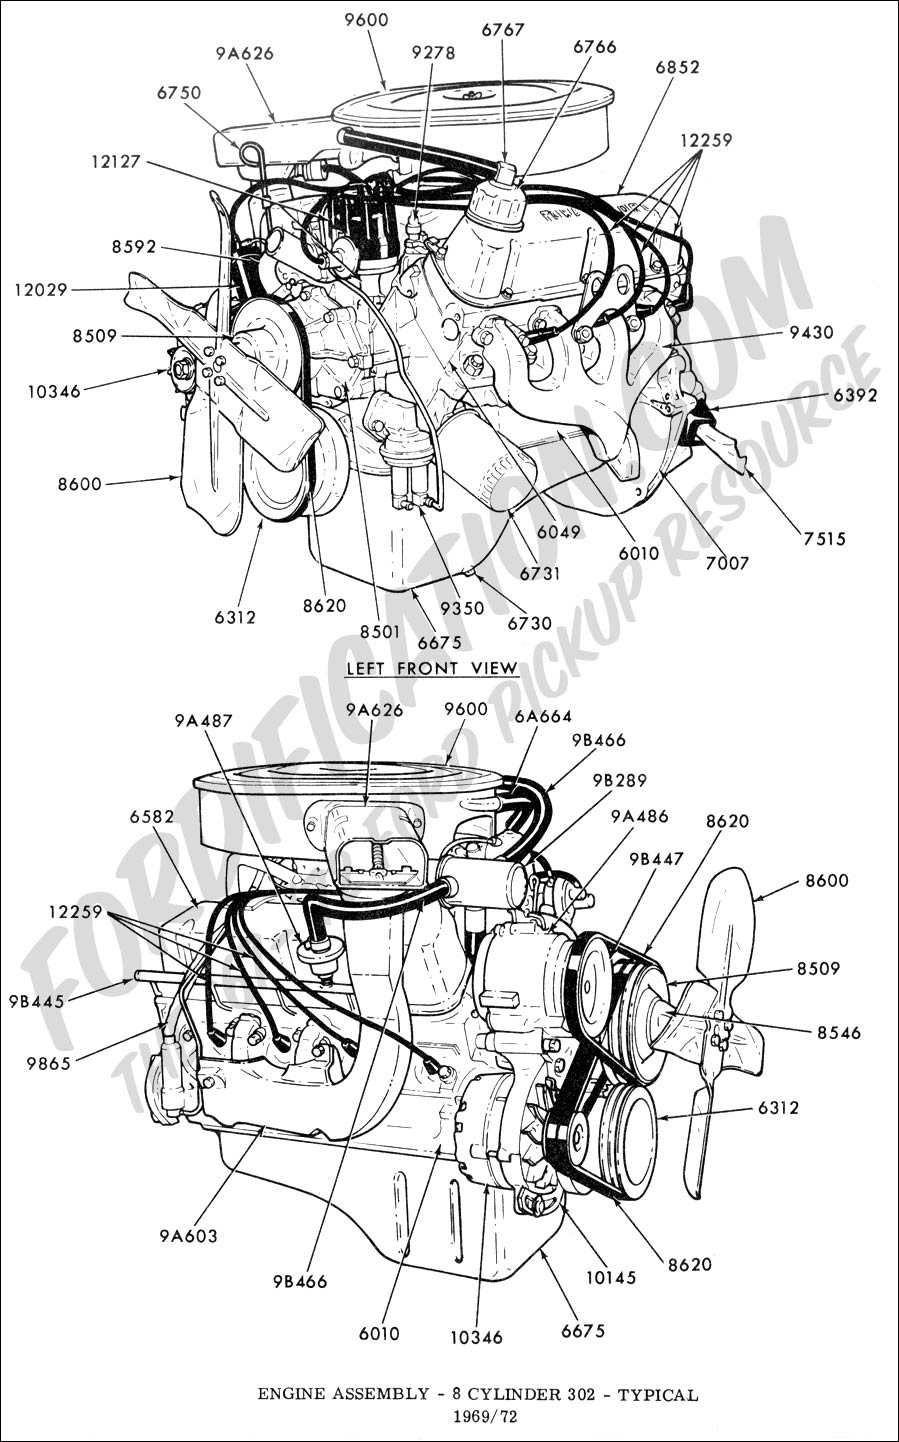 [DOC] Diagram 1965 Mustang Engine 289 Diagram Ebook